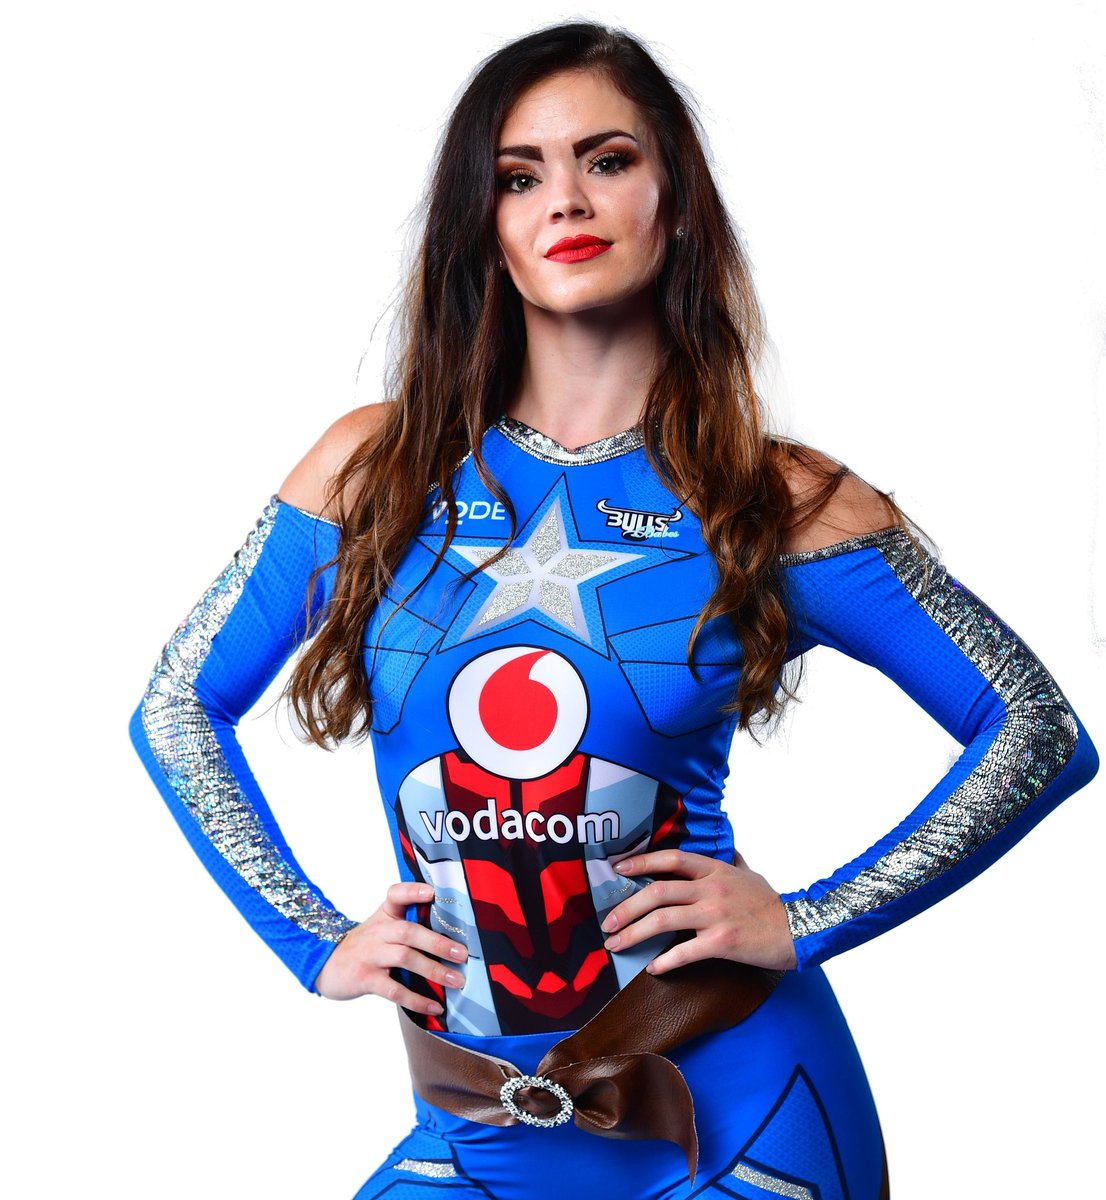 #BullsFamily Get to know Vodacom Bulls Babe, Sjandri Els, in our QnA. 💃🏼 Read more: bullsrugby.co.za/vodacom-bulls-…